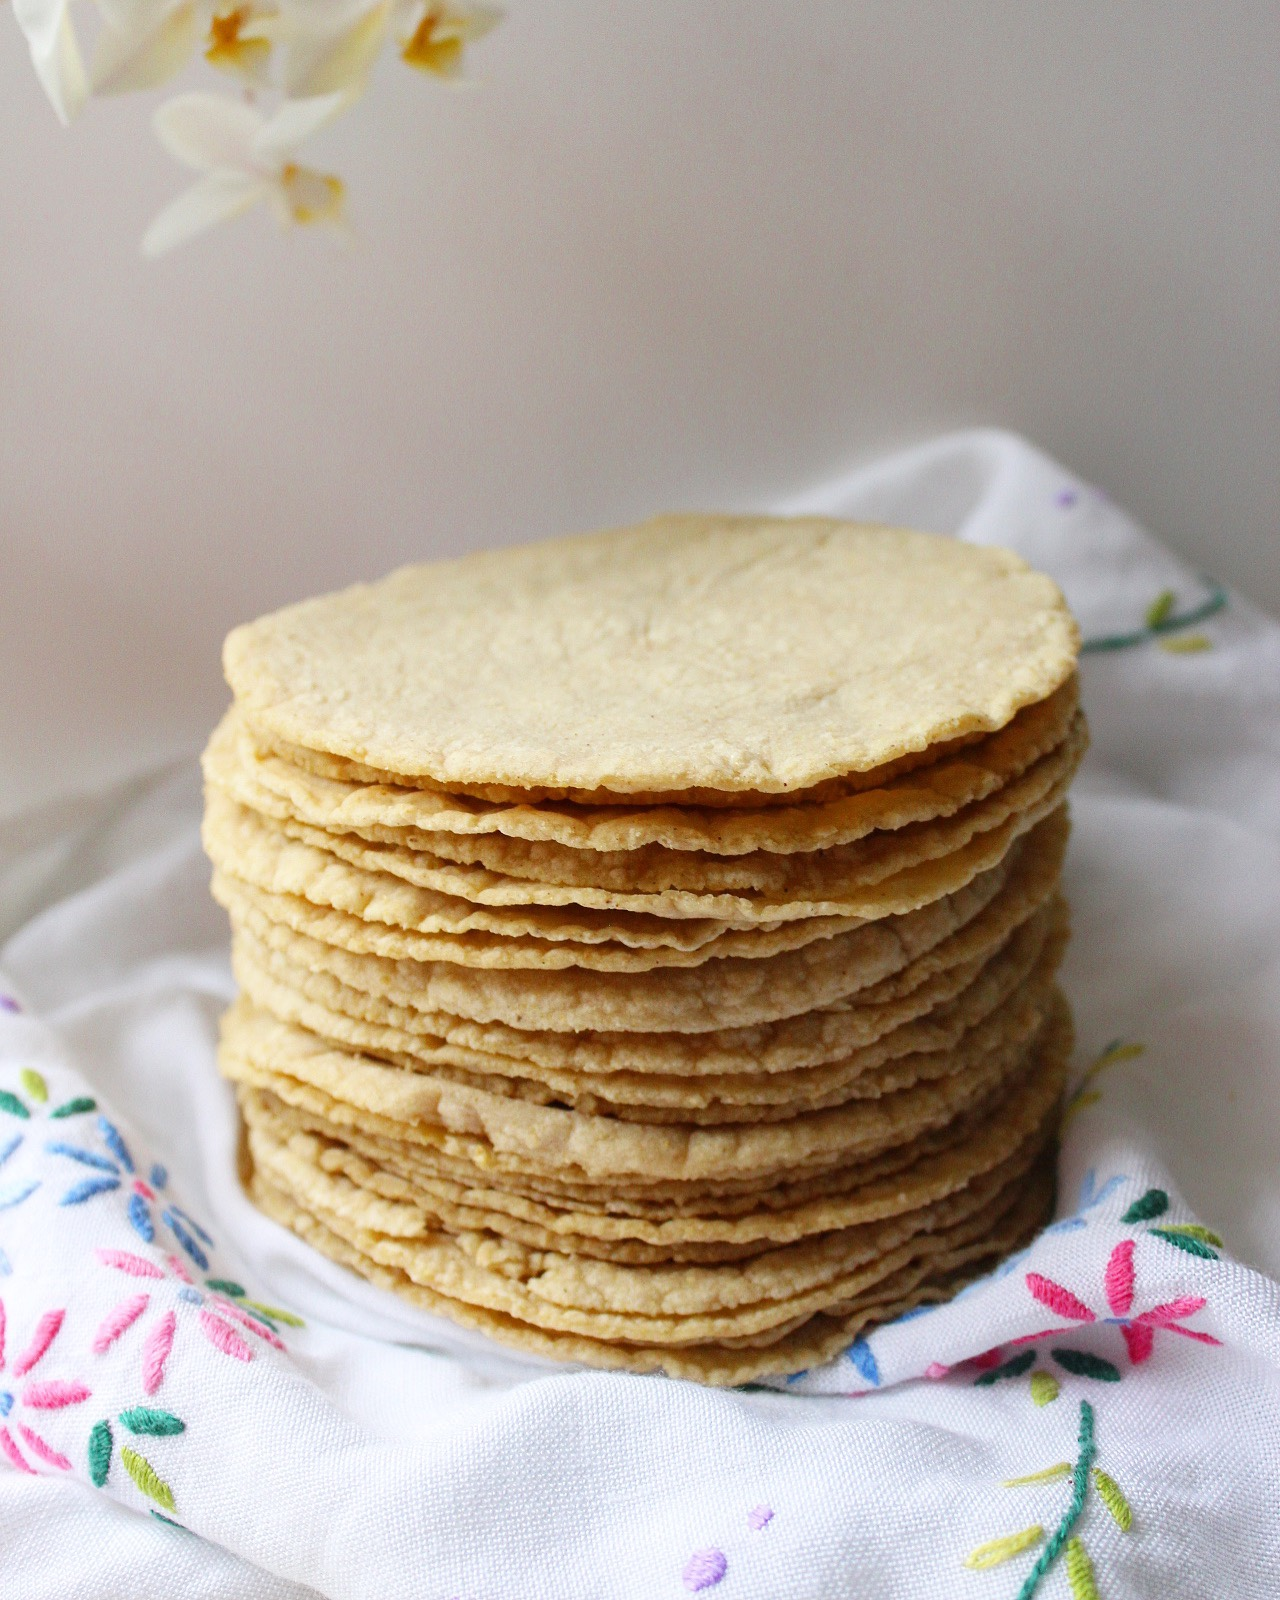 Tortillas de Maíz (Corn Tortillas)